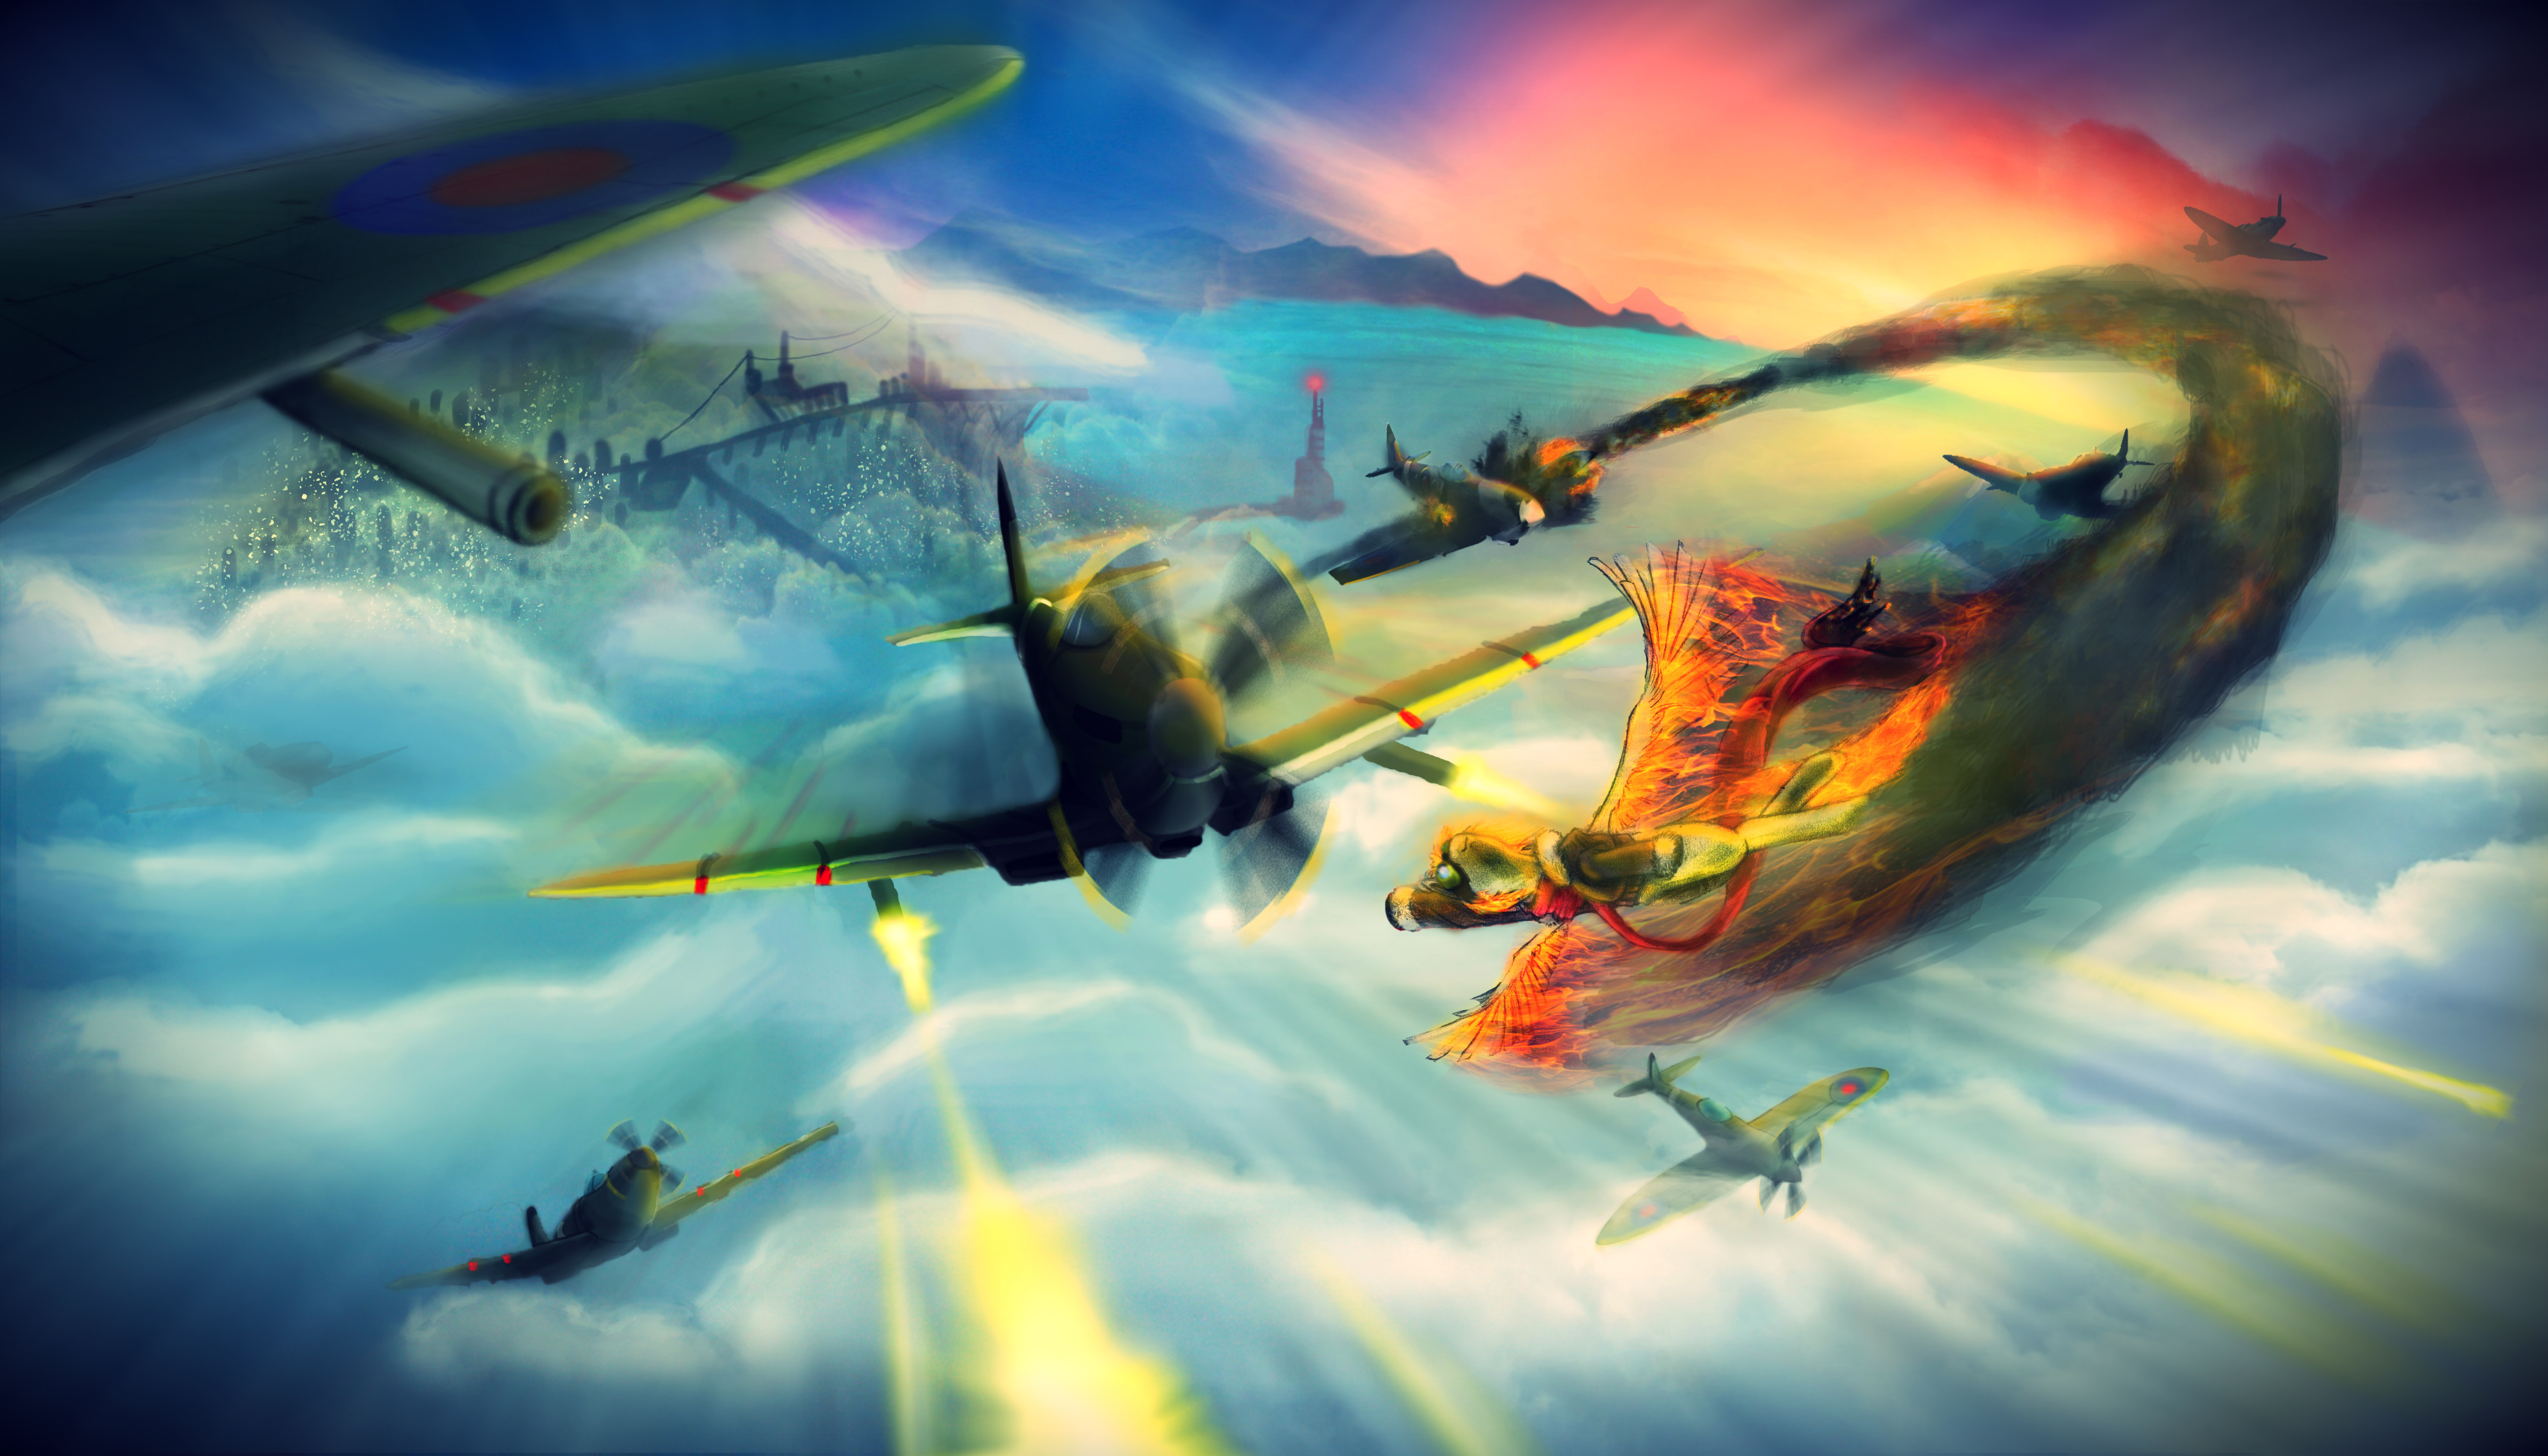 SpitfireS in the sky by Ackuroon